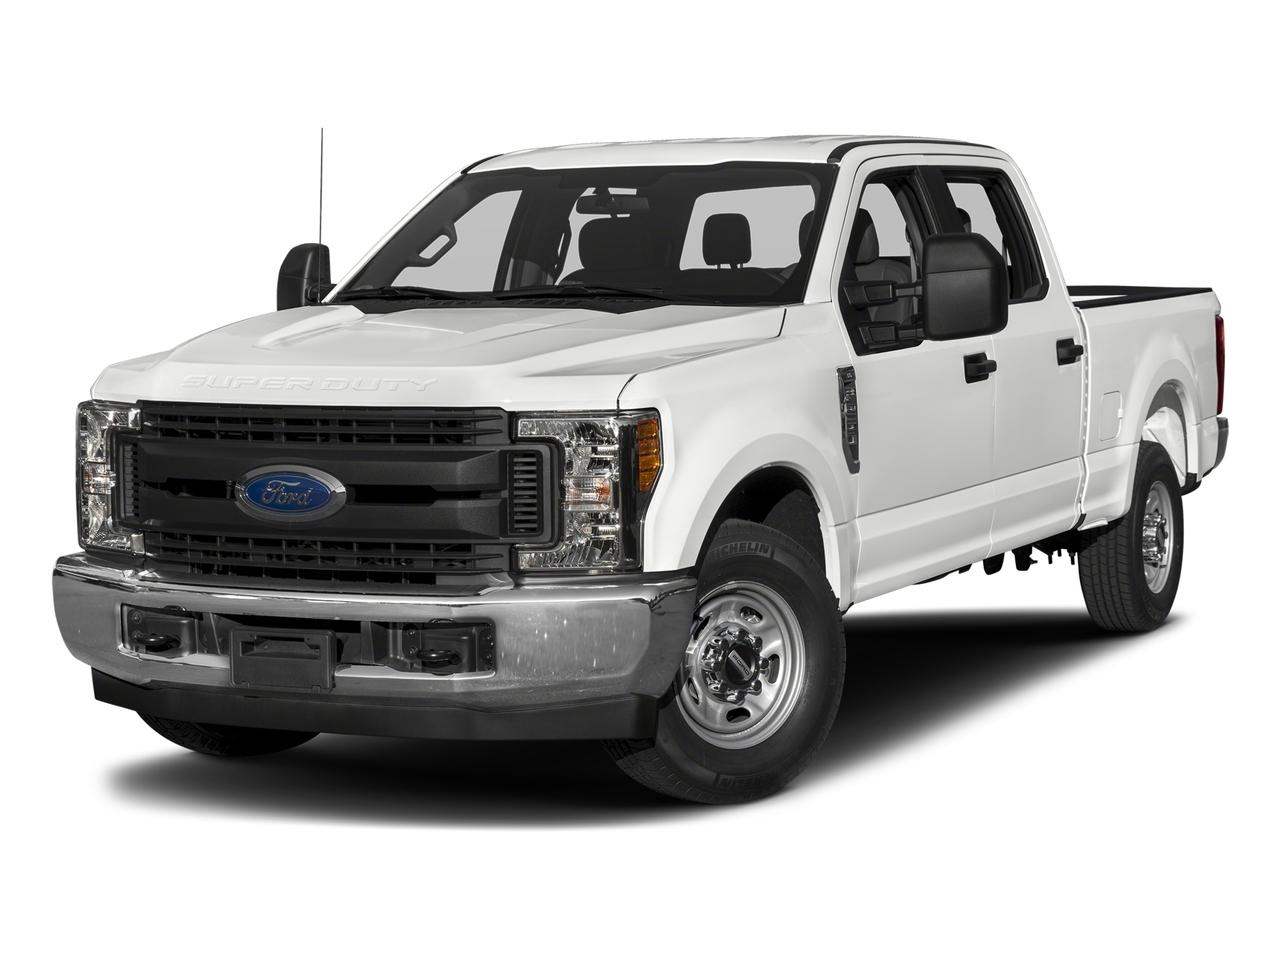 2017 Ford Super Duty F-250 SRW Vehicle Photo in Spokane, WA 99207